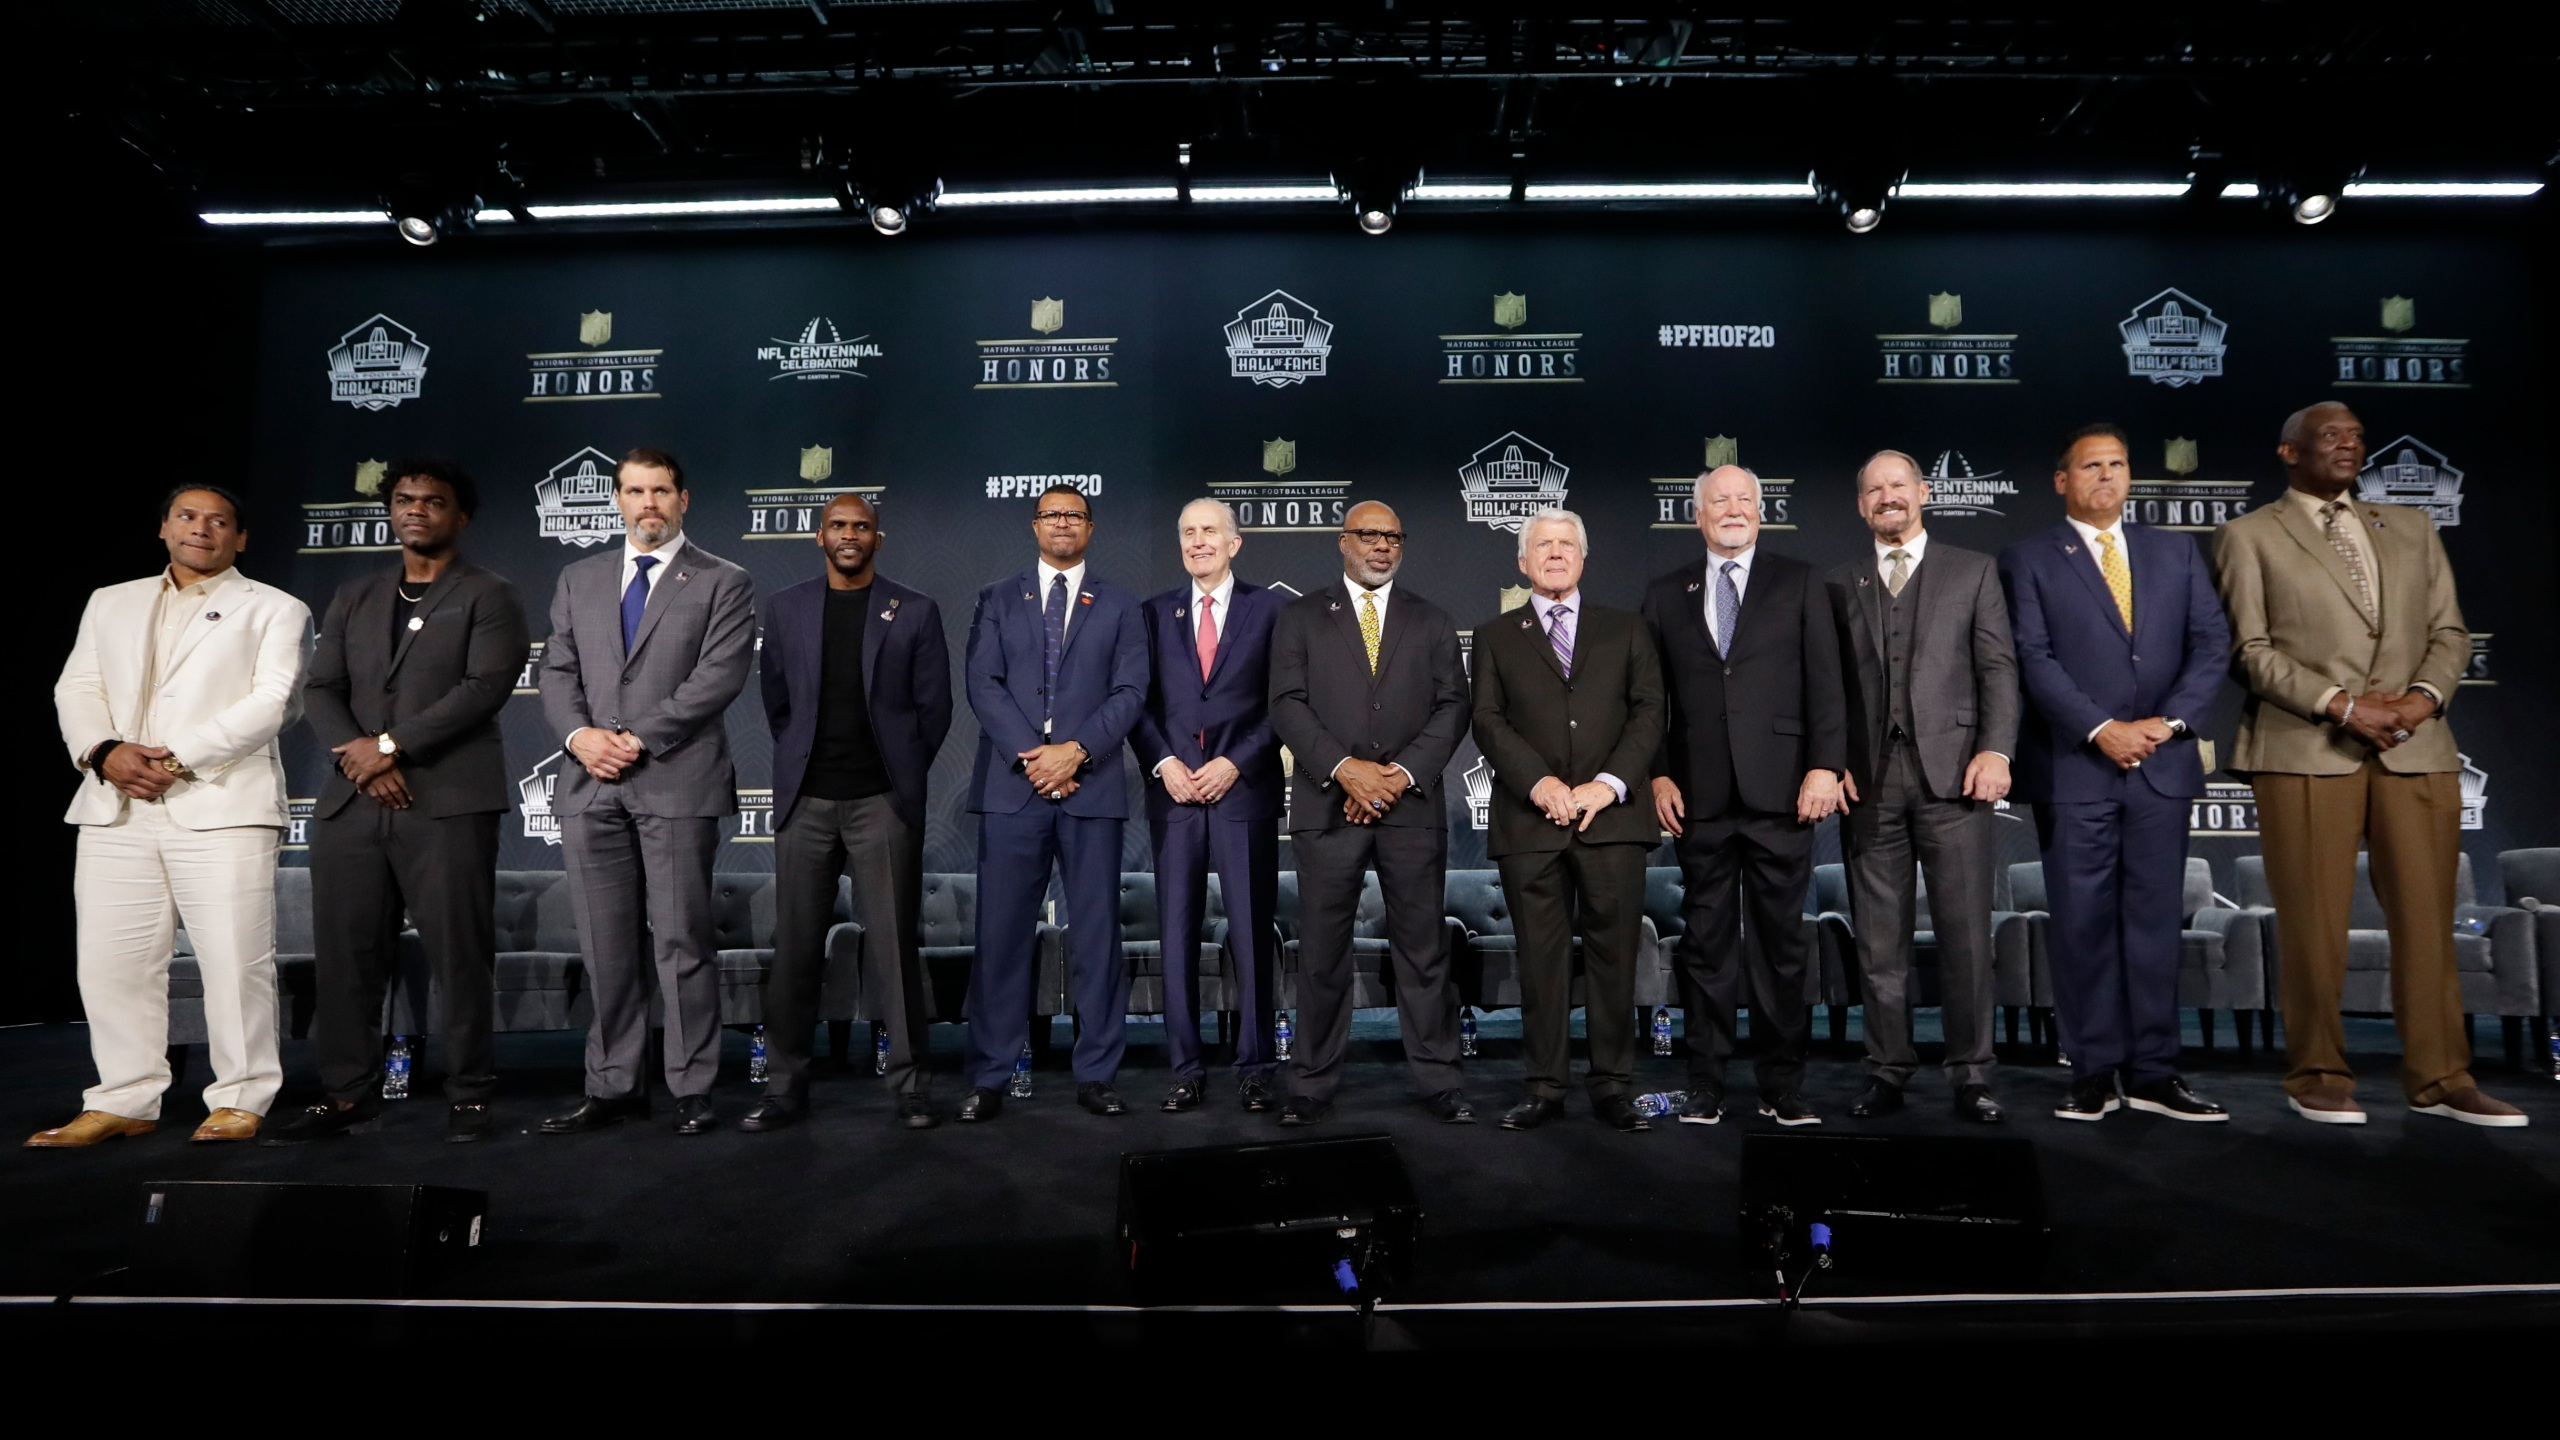 Hall of Fame Class of 2020, from left, Troy Polamalu, Edgerrin James, Steve Hutchinson, Isaac Bruce, Steve Atwater, Paul Tagliabue, Donnie Shell, Jimmie Johnson, Cliff Harris, Bill Cowher, Jimbo Covert, and Harold Carmichael pose at the NFL Honors football award show Saturday, Feb. 1, 2020, in Miami. (AP Photo/Mark Humphrey)